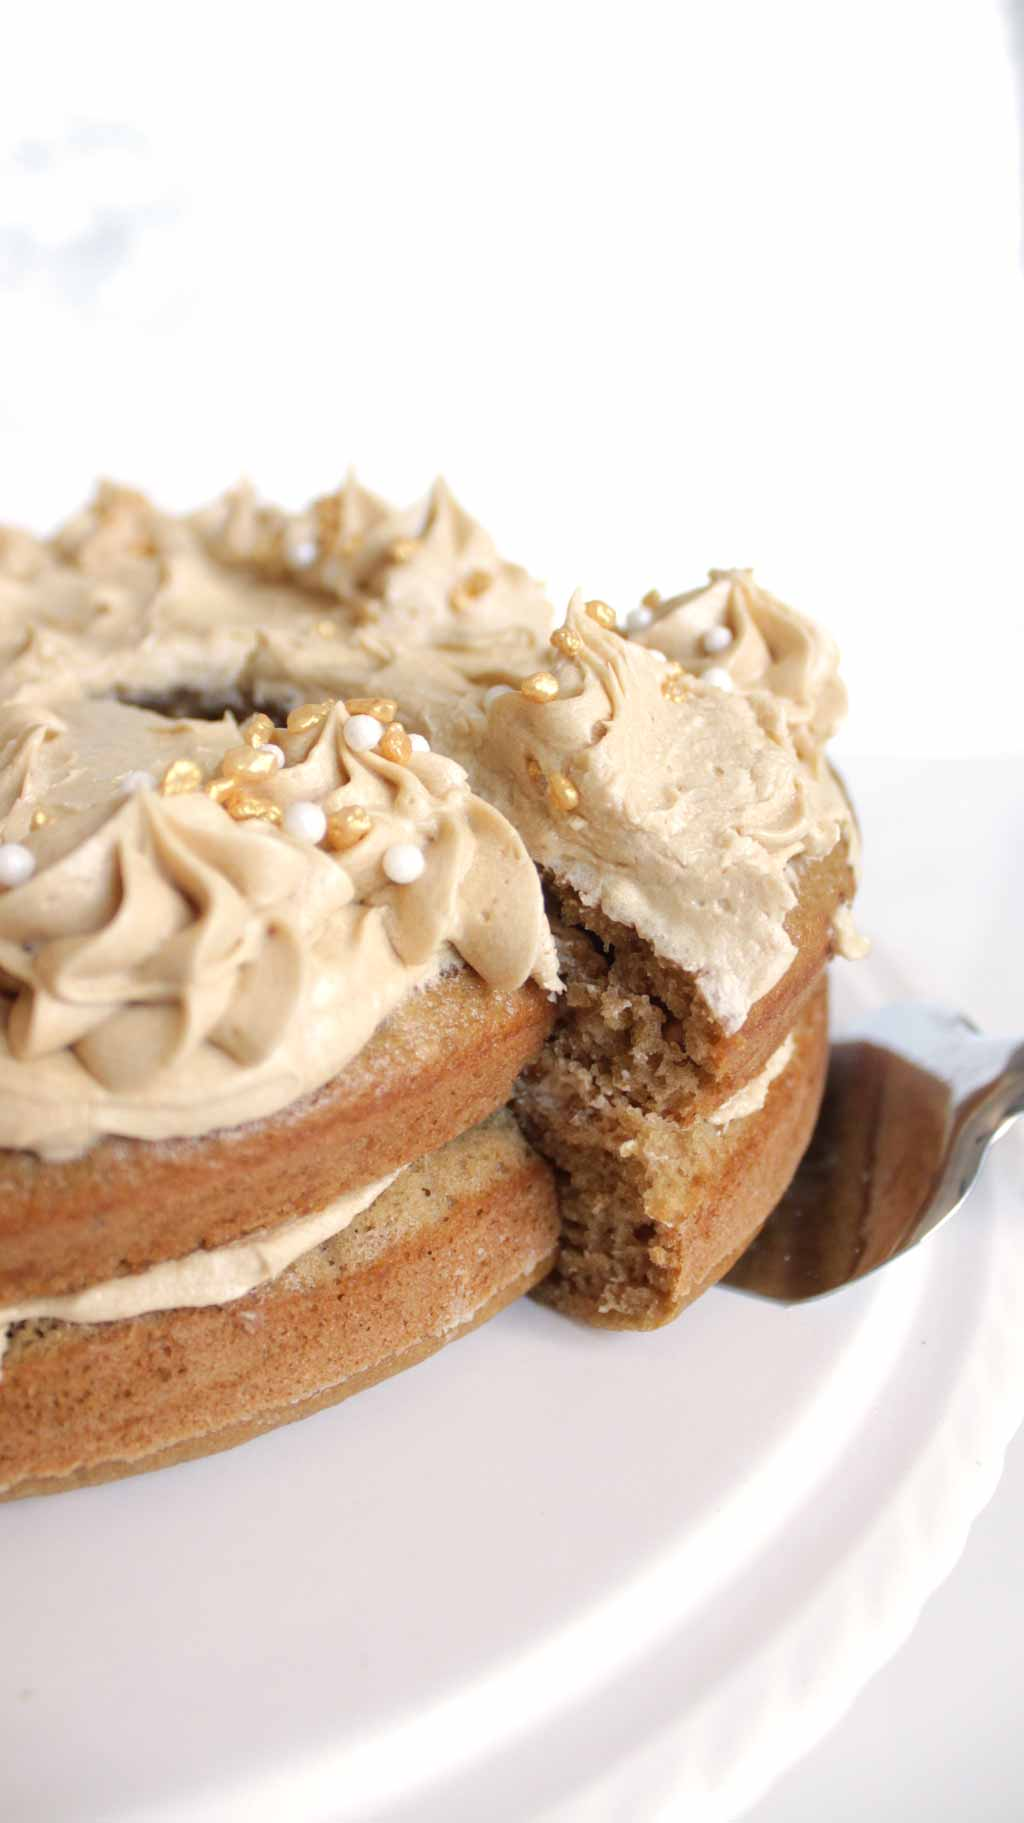 Coffee Cake With A Cake Knife Under One Slice